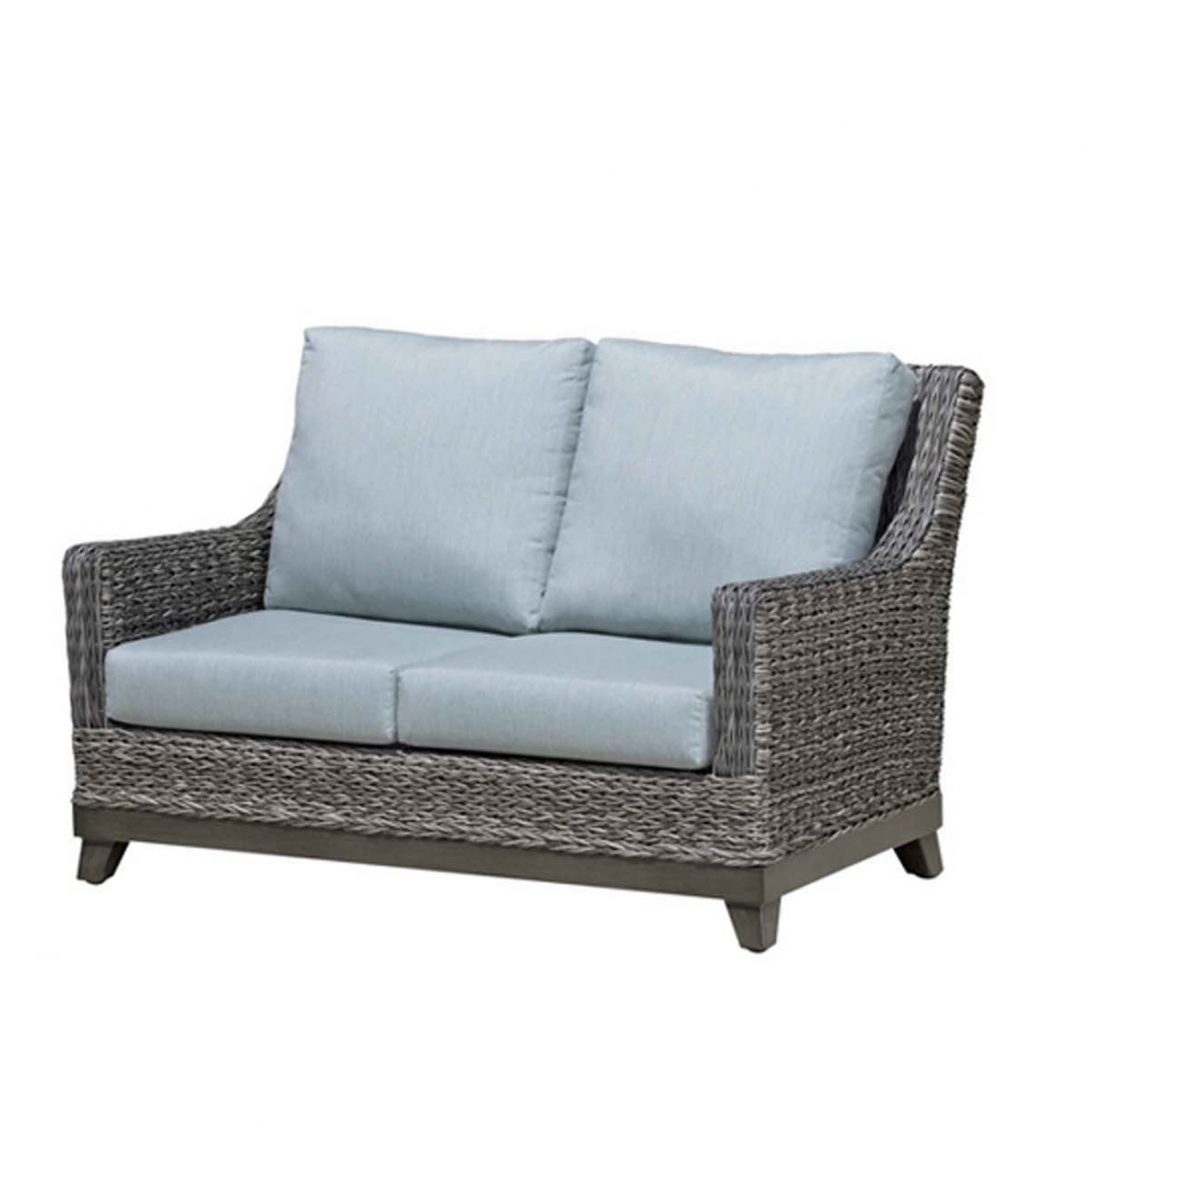 The Boston loveseat by Ratana in grey wicker with light blue cushions.